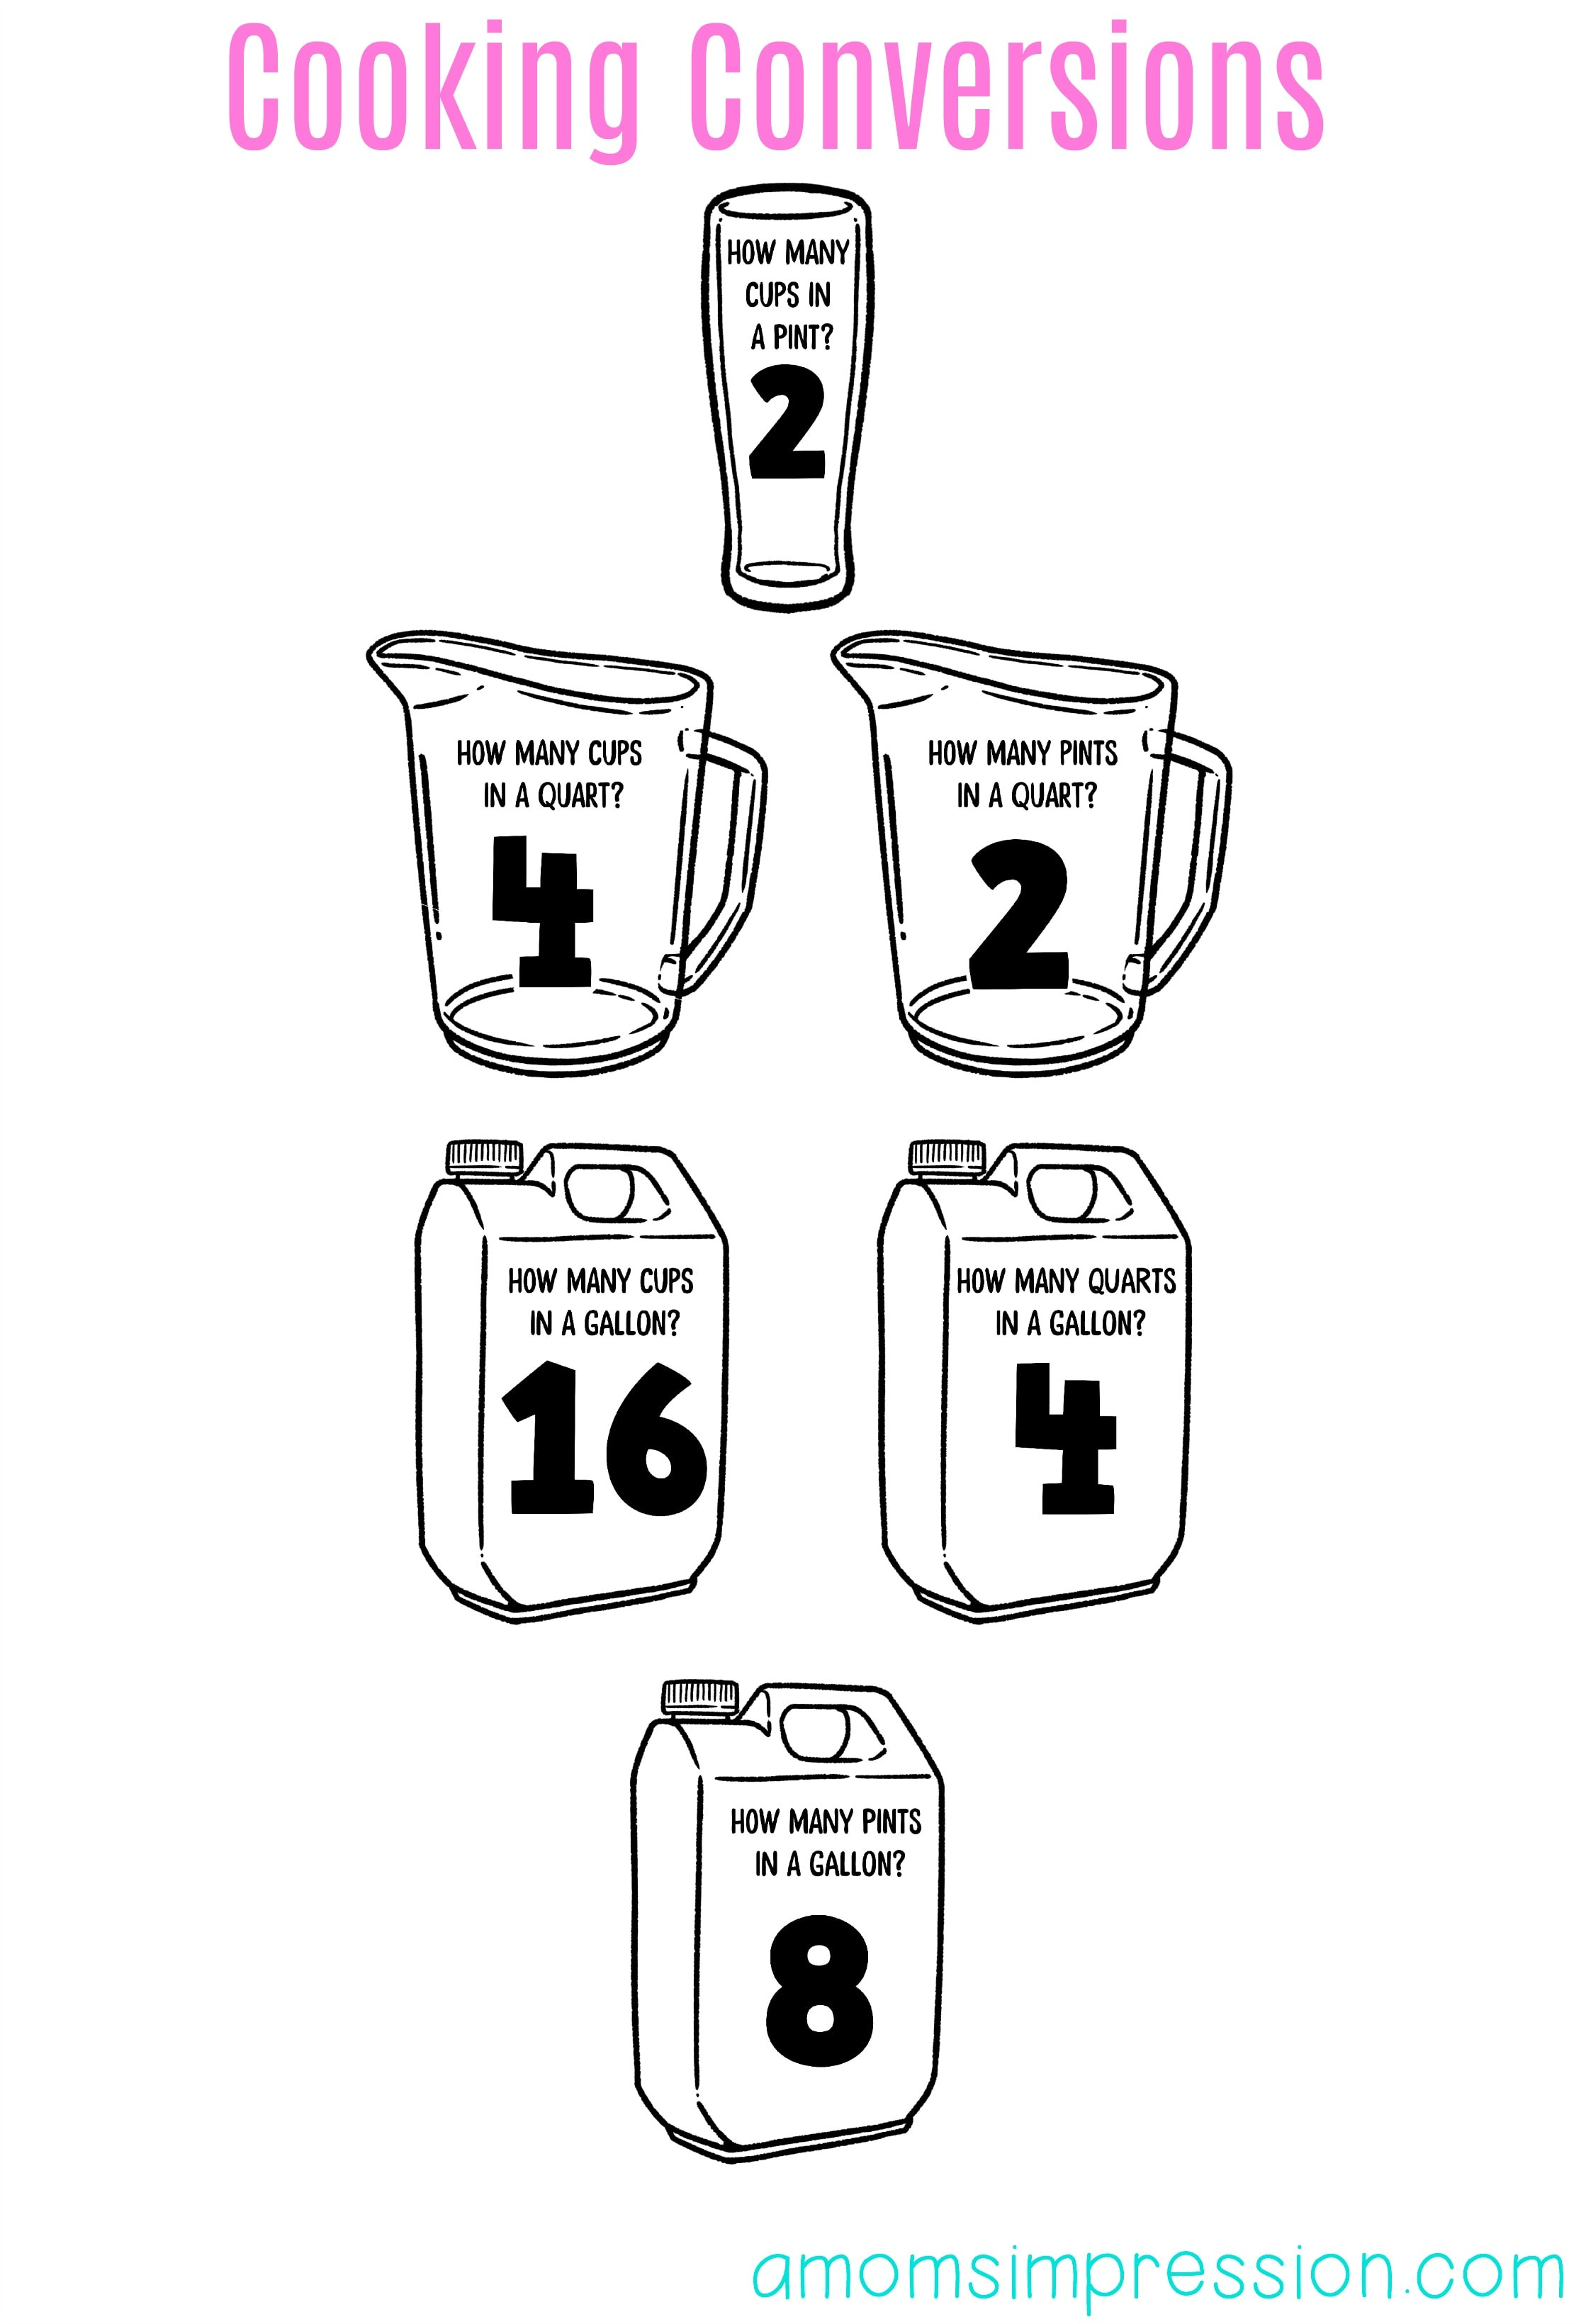 How Many Cups in a Quart cooking conversion chart